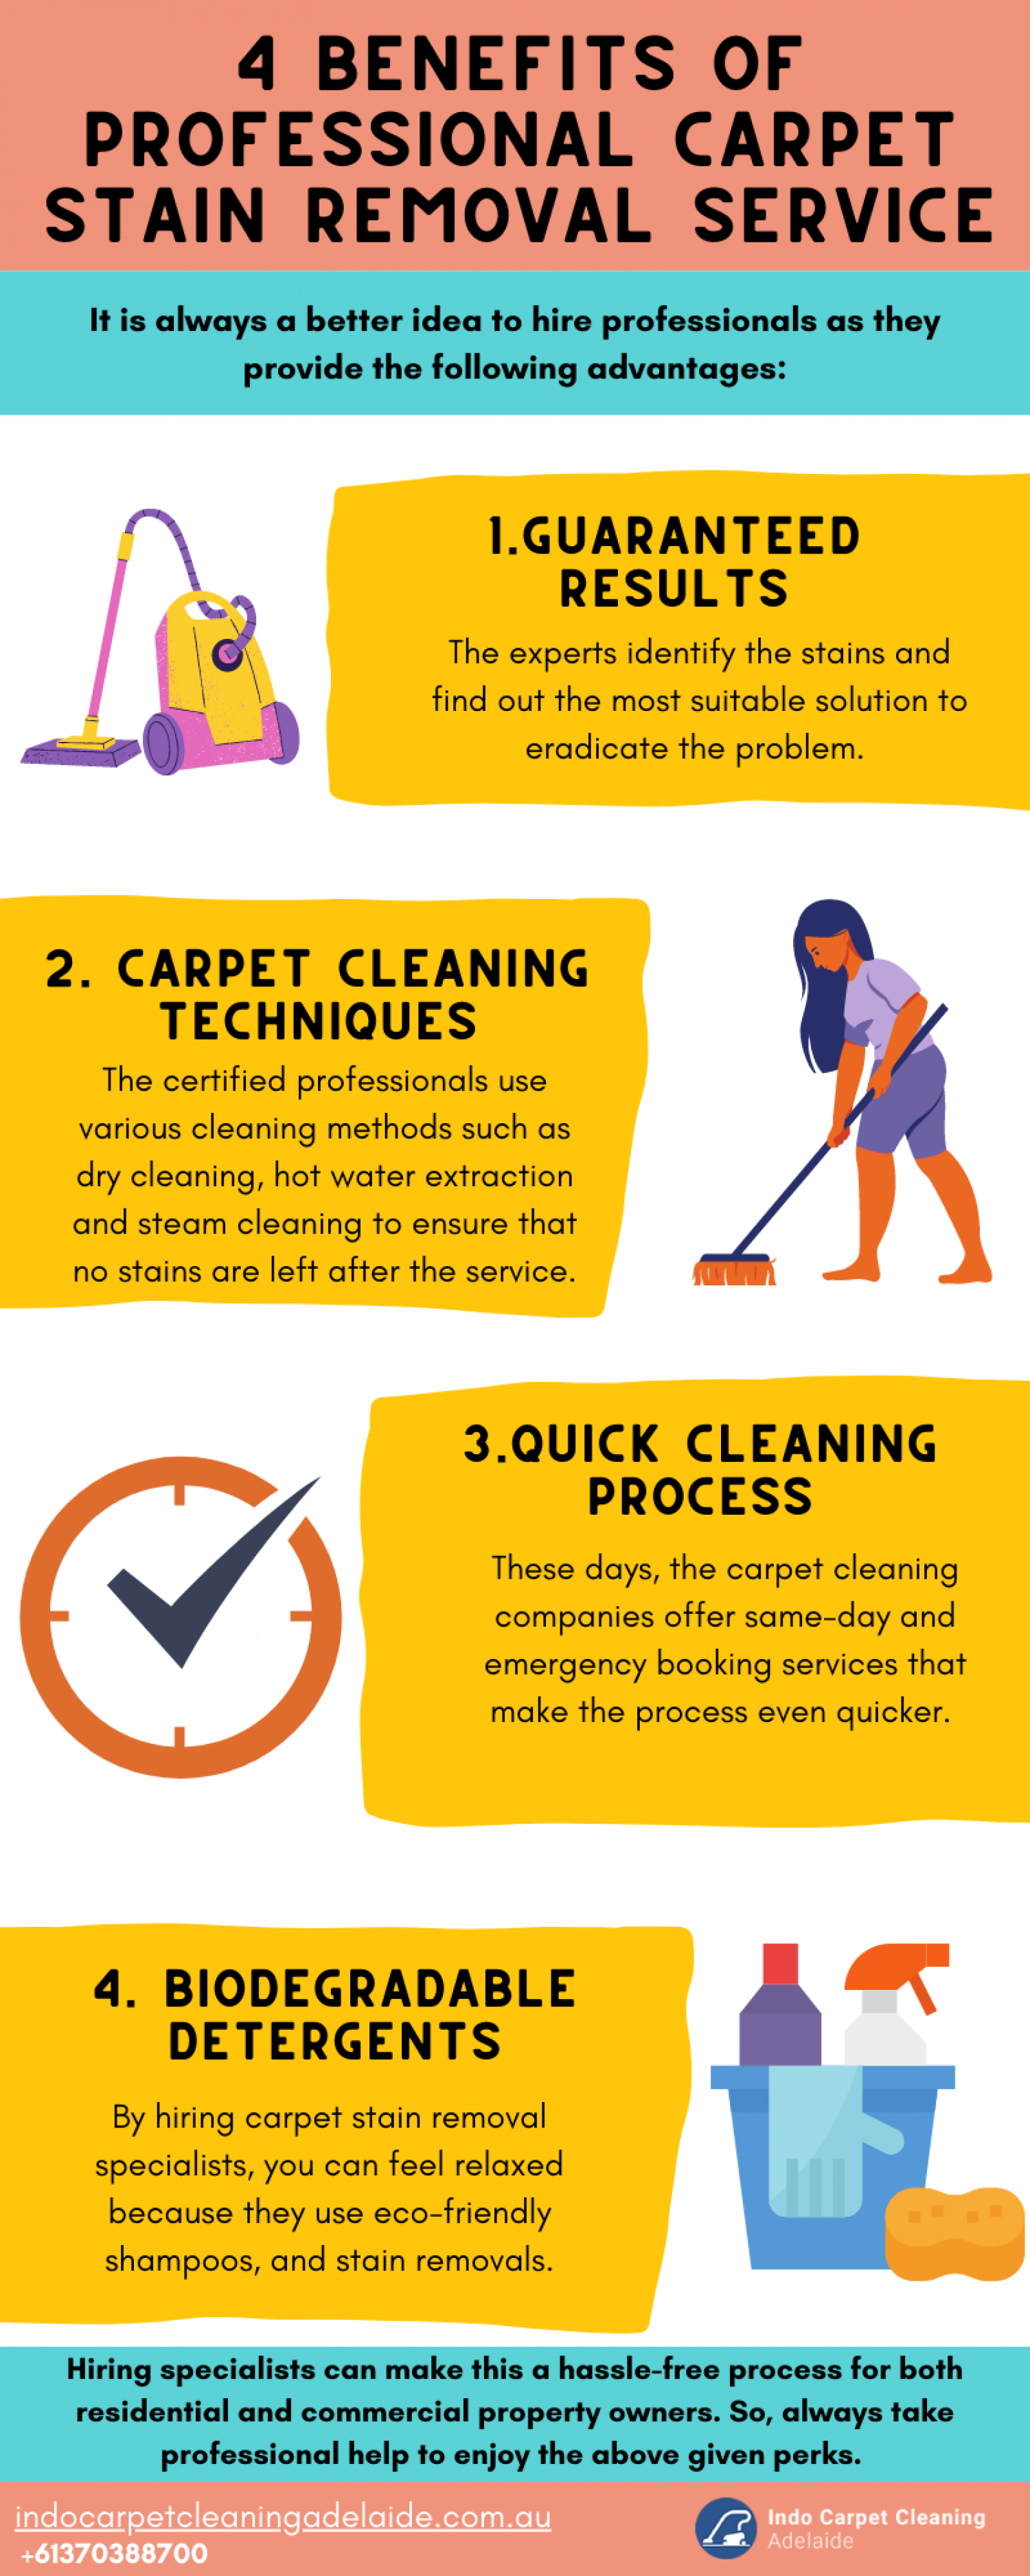 4 Benefits of professional carpet stain removal service Infographic